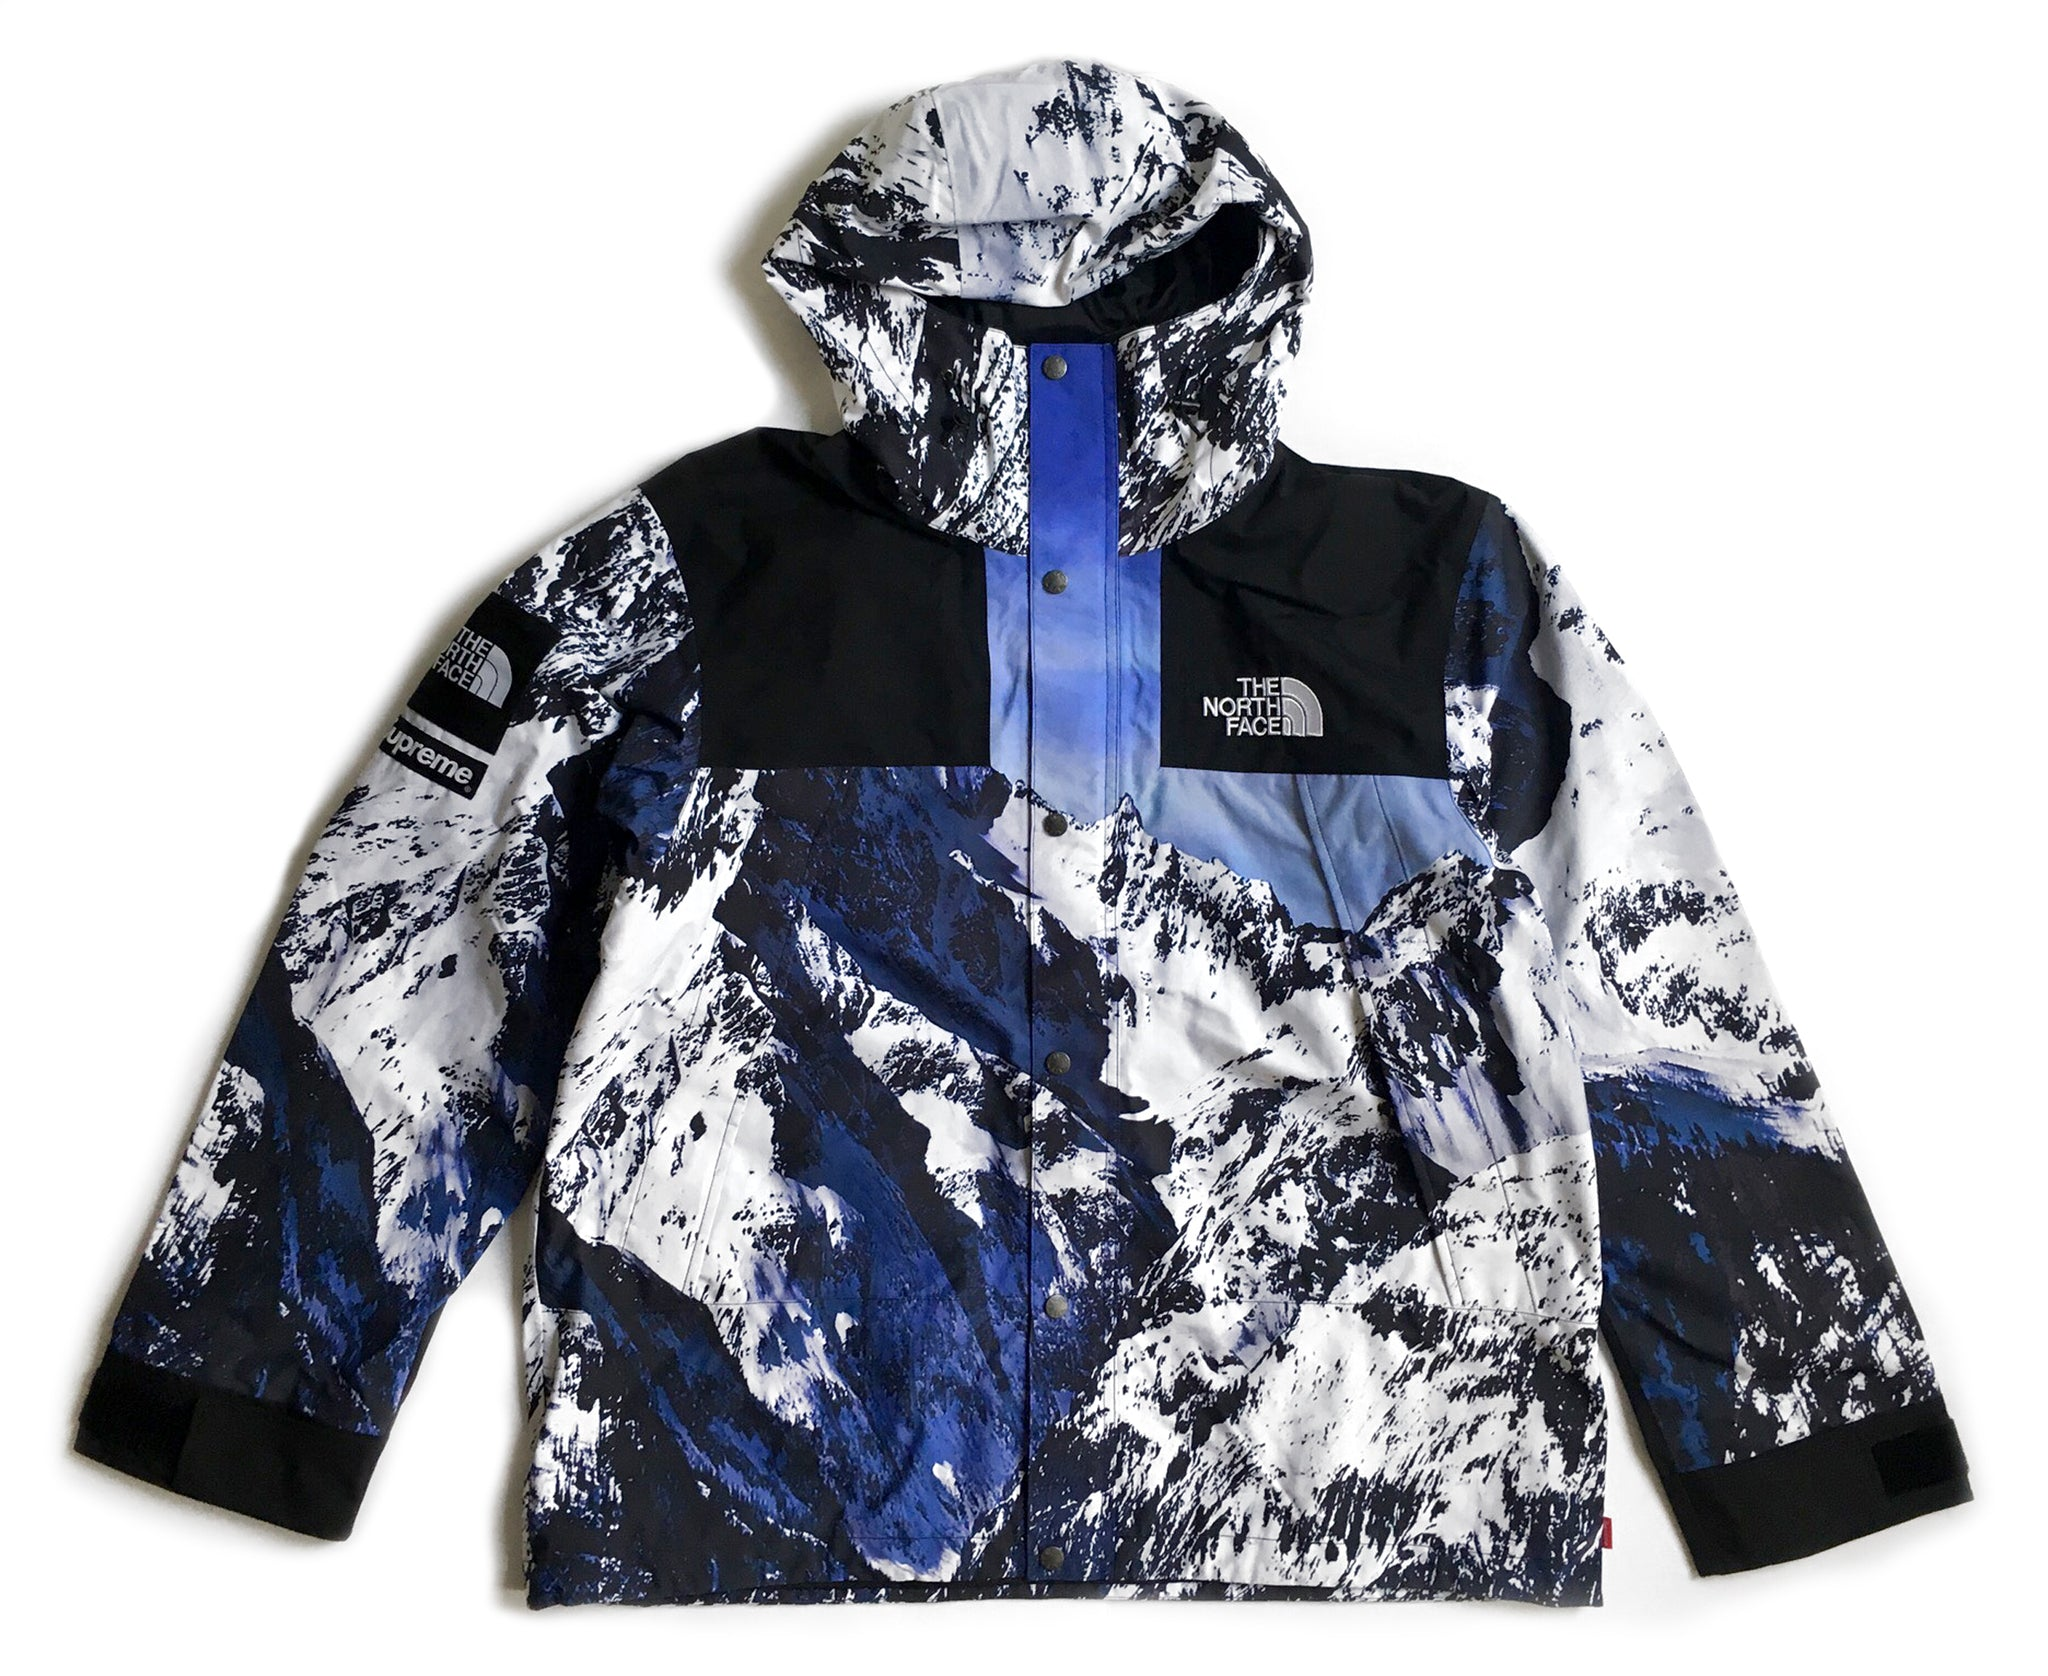 478bb229e7 wholesale load image into gallery viewer supreme the north face mountain  jacket fw17 7940a 30b33